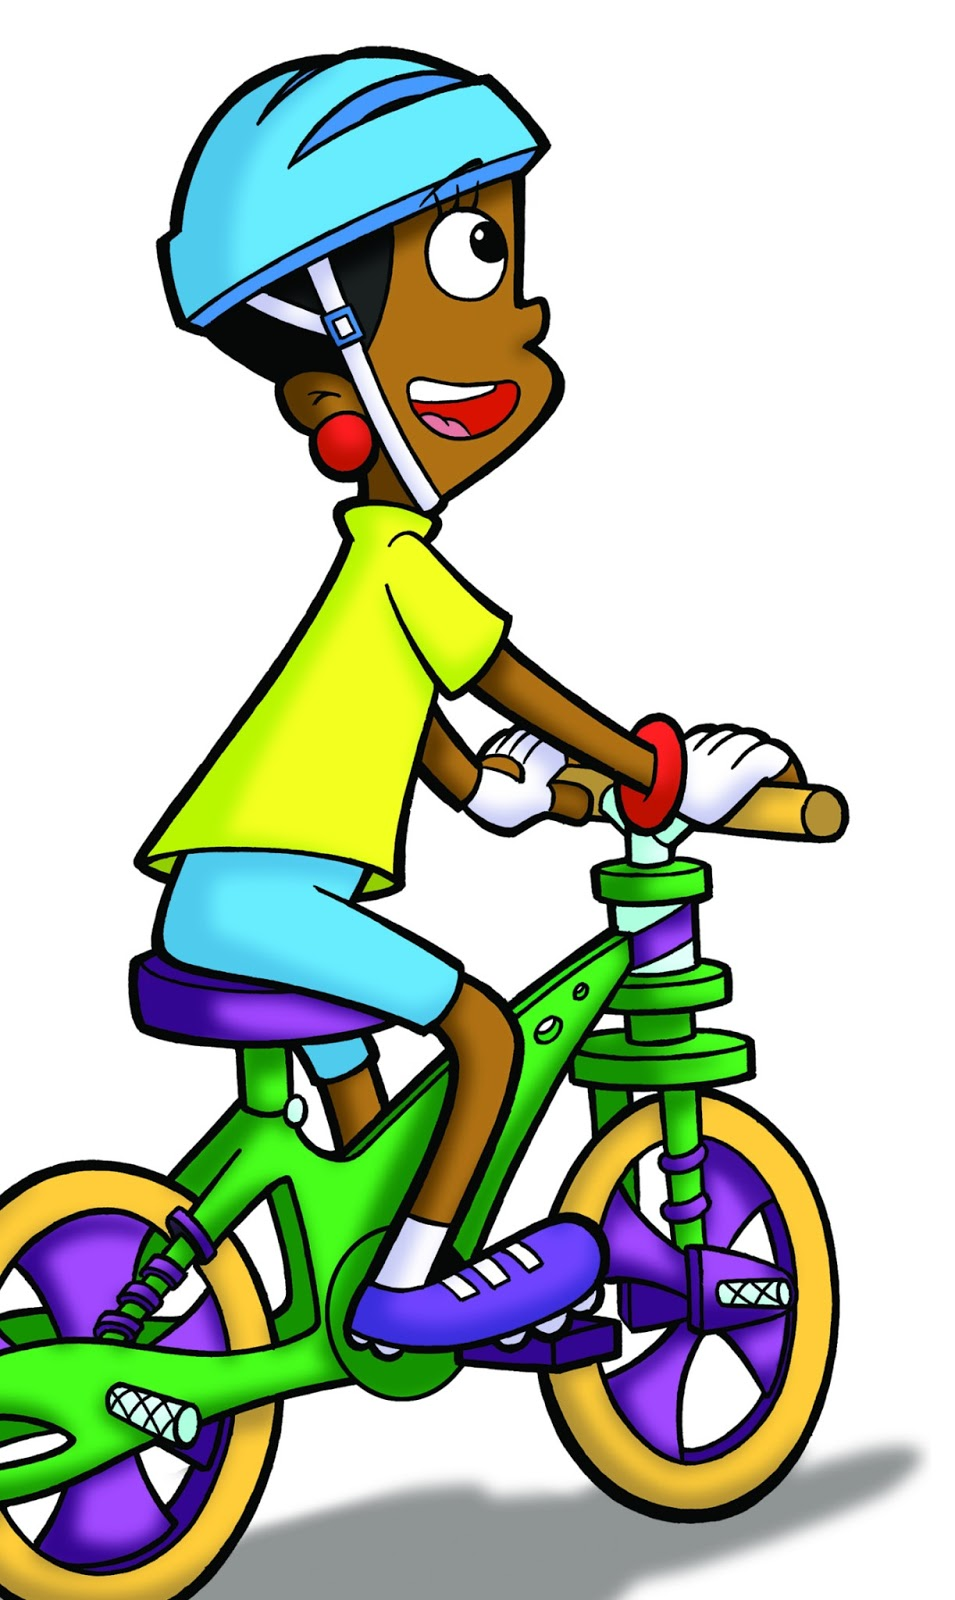 Cartoon Characters: Cyberchase images